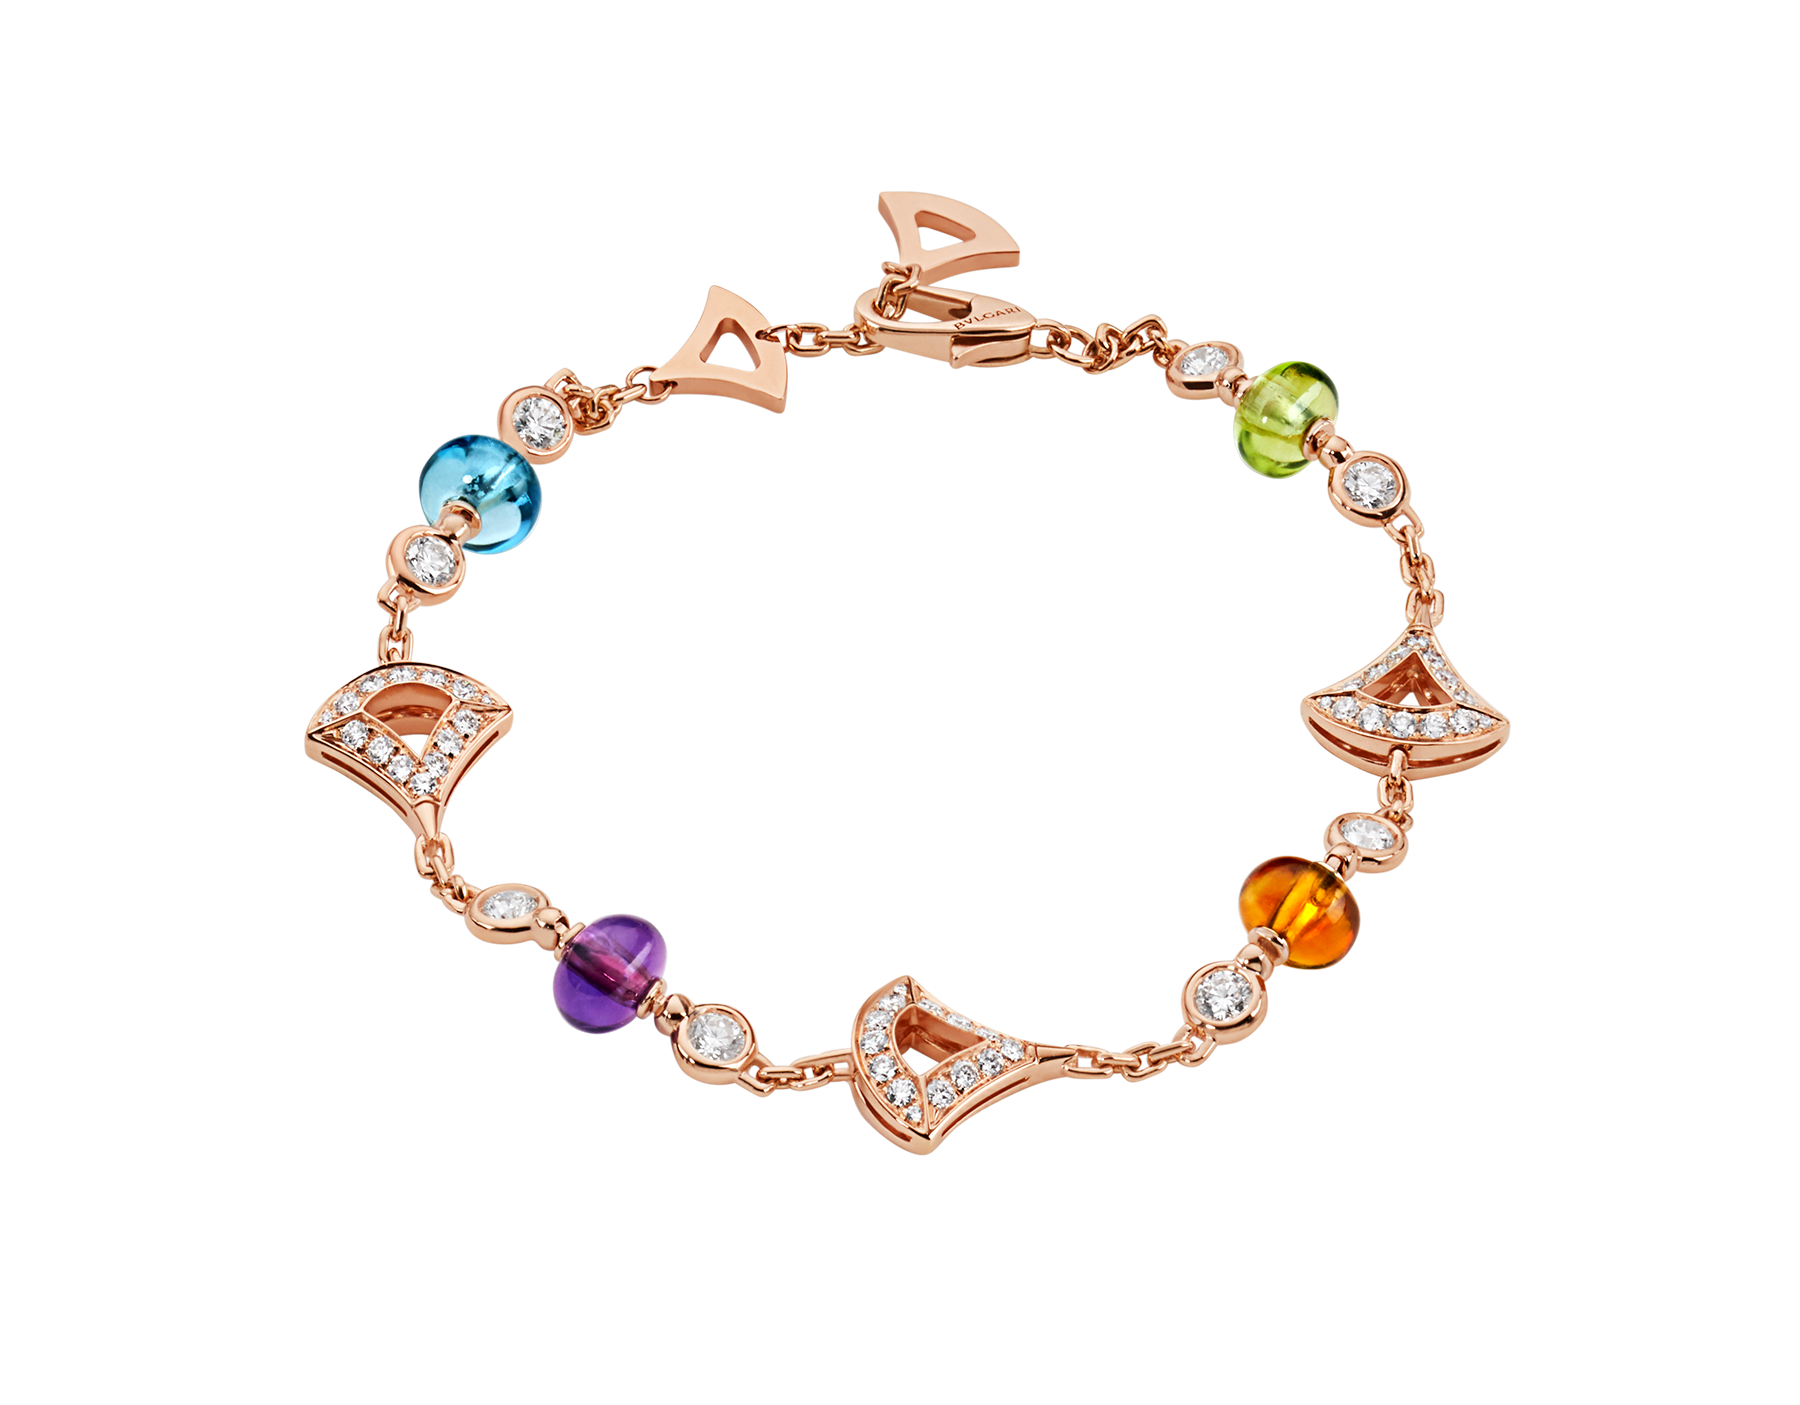 DIVAS' DREAM 18 kt rose gold bracelet set with coloured gemstones and pavé diamonds BR858399 image 1